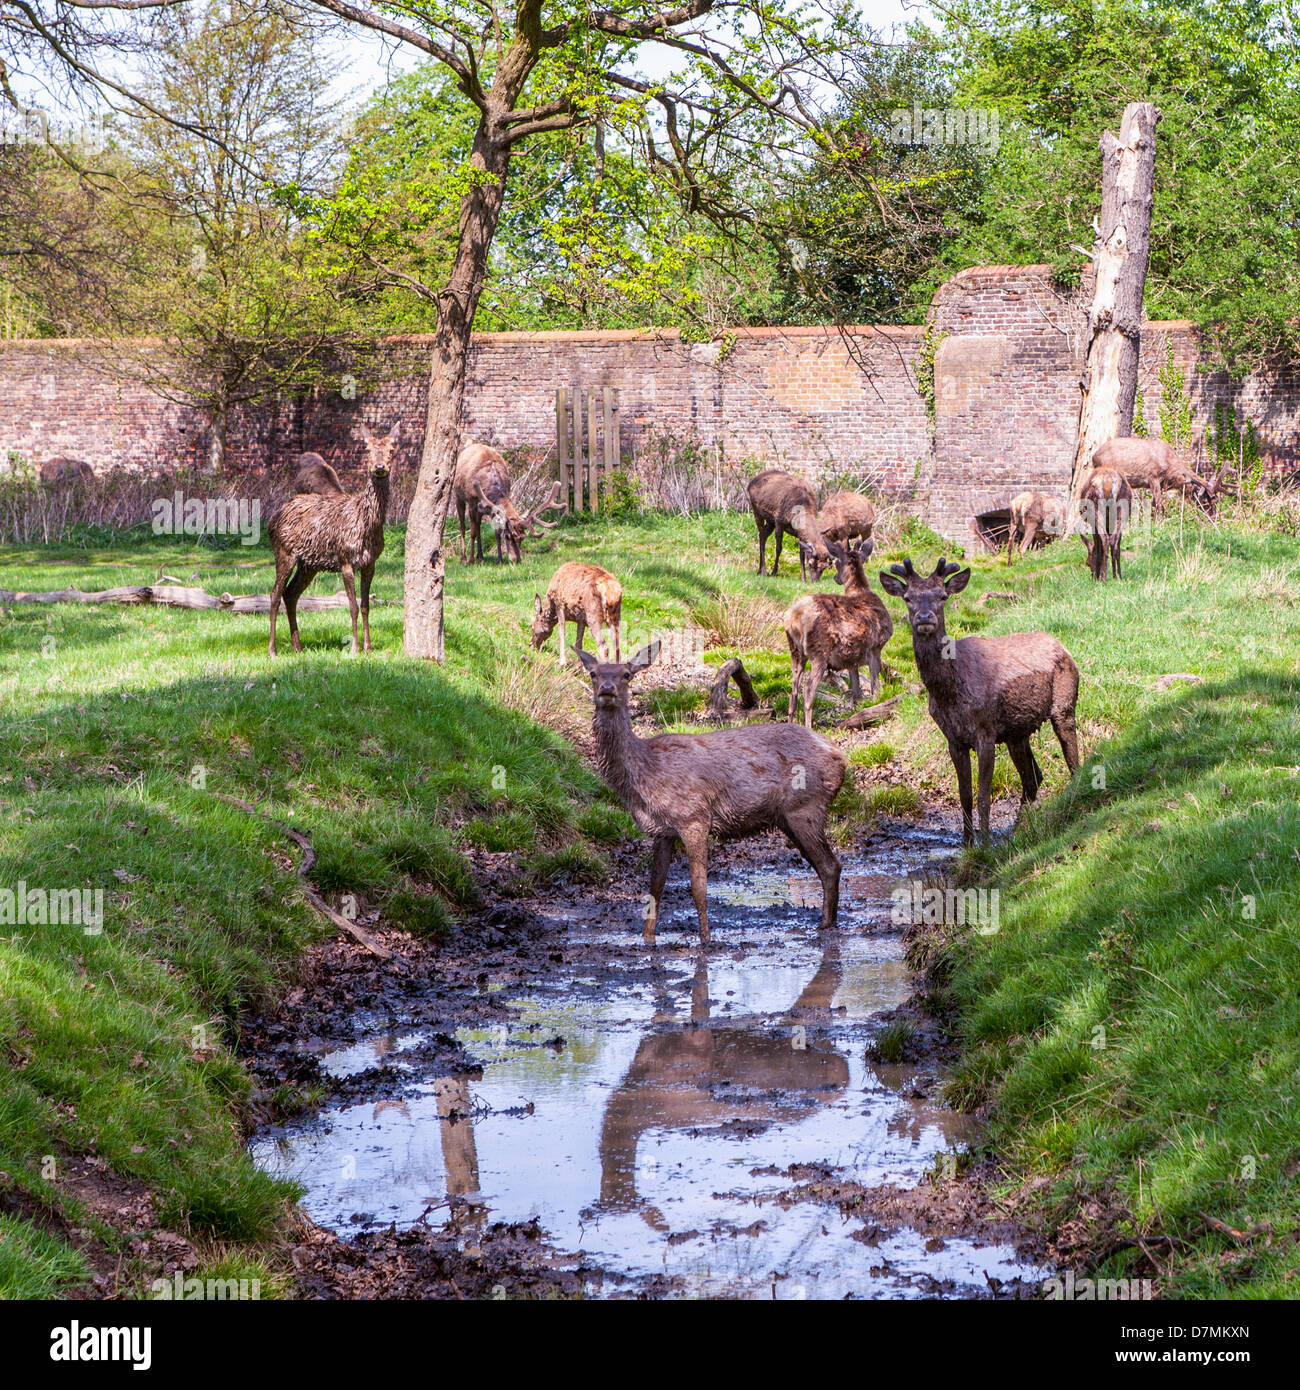 Red deer cooling off in a muddy stream in Richmond Park, London, UK - Stock Image